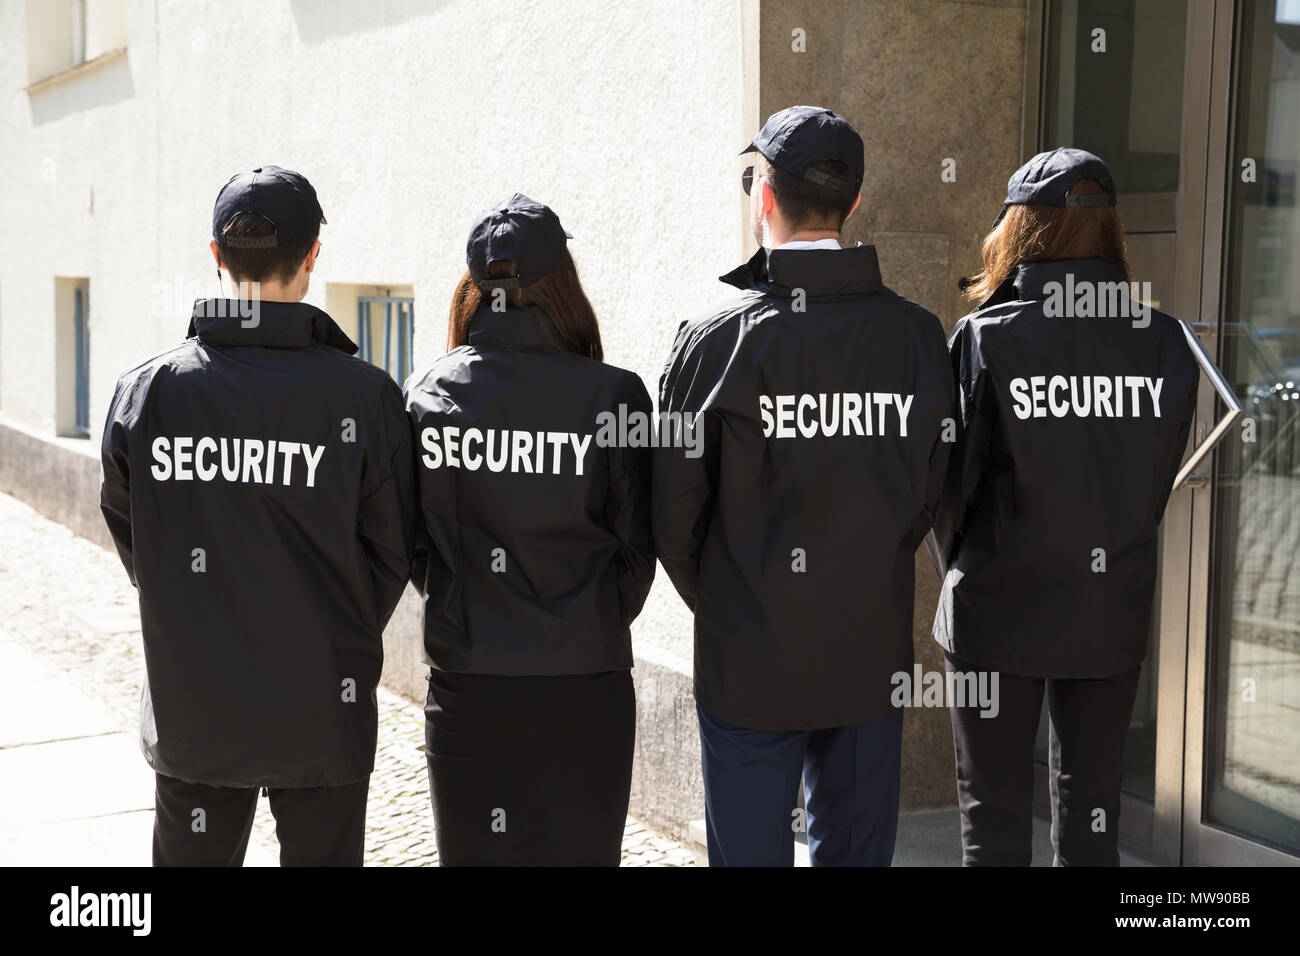 Rear View Of Security Guards Wearing Uniform Standing In A Row - Stock Image